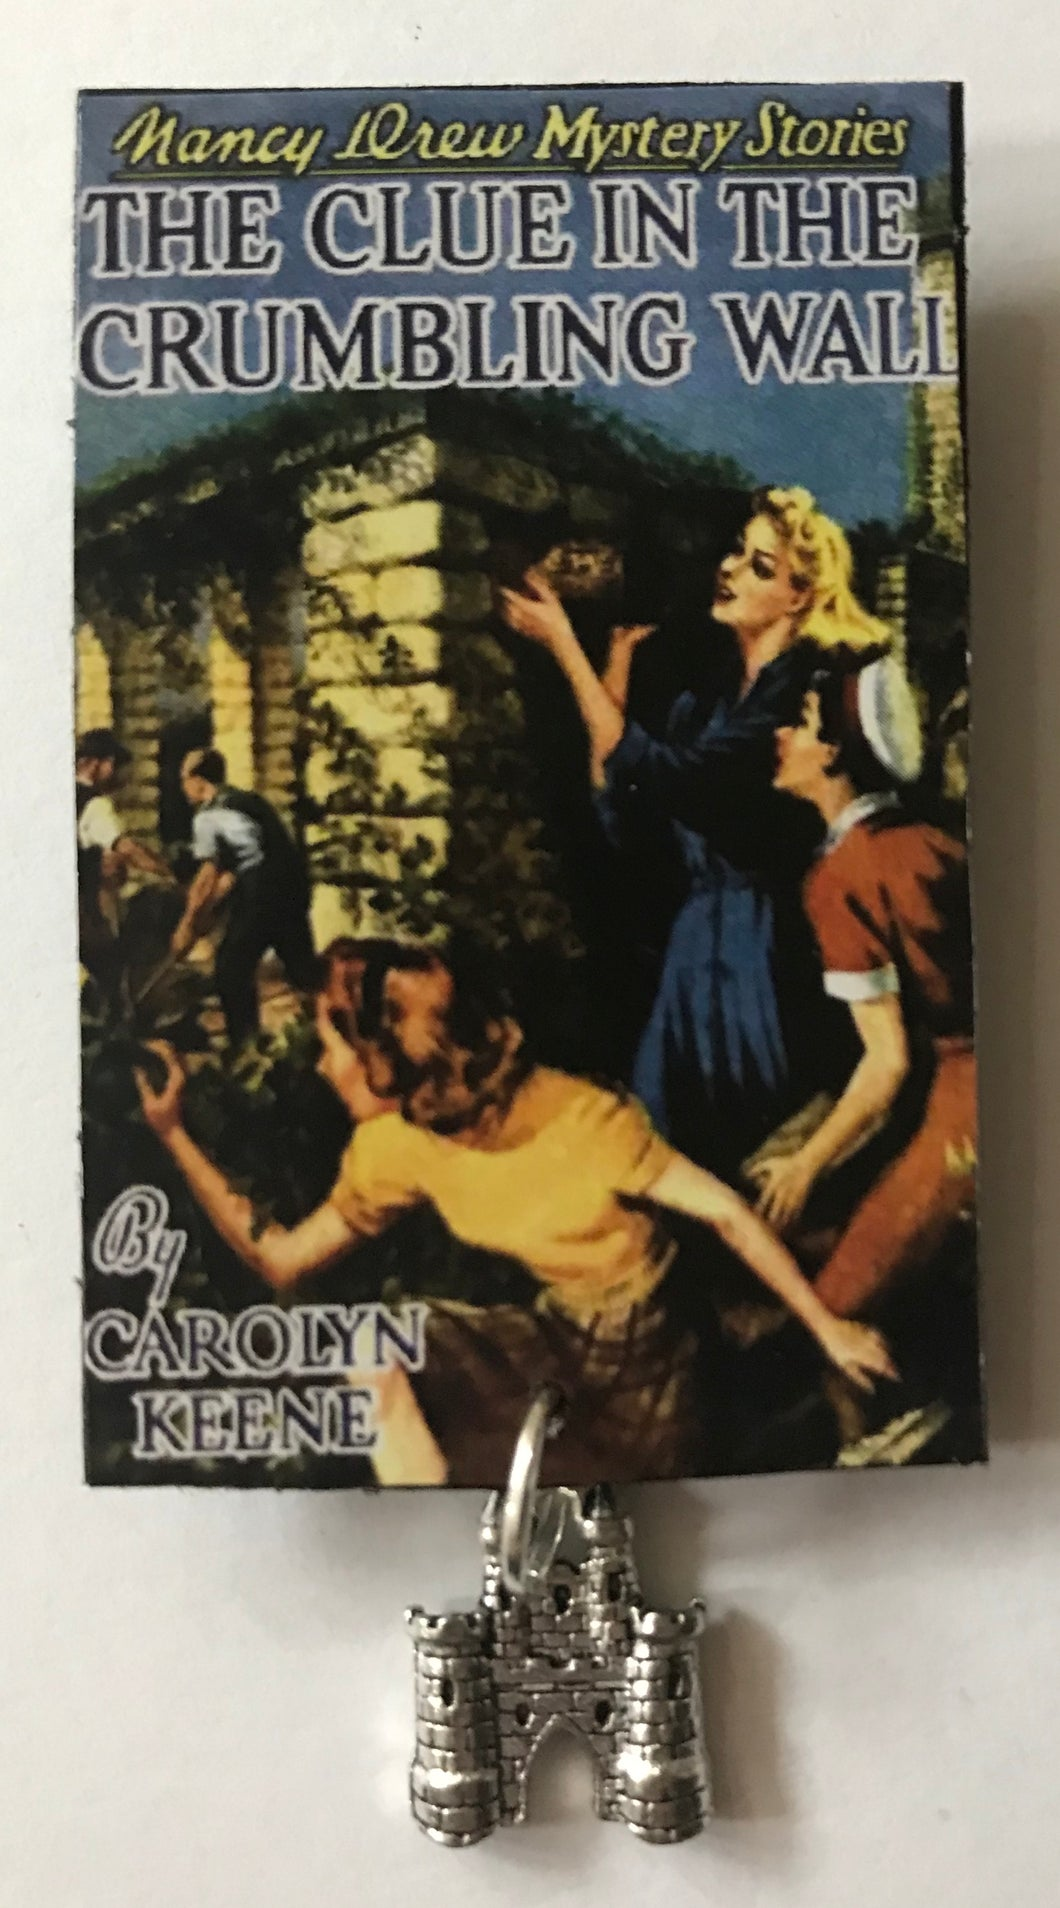 Nancy Drew Book Cover Crumbling Wall Pin or Ornament